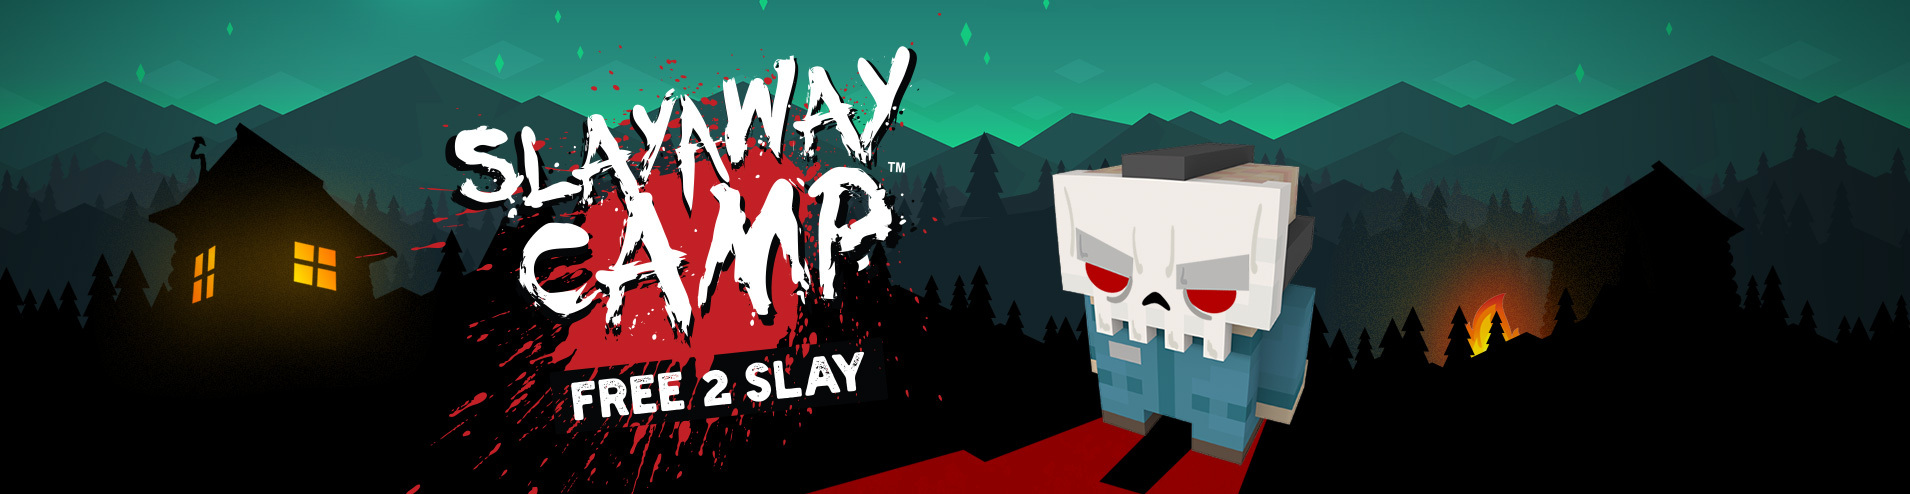 Slayaway Camp - Free to Slay